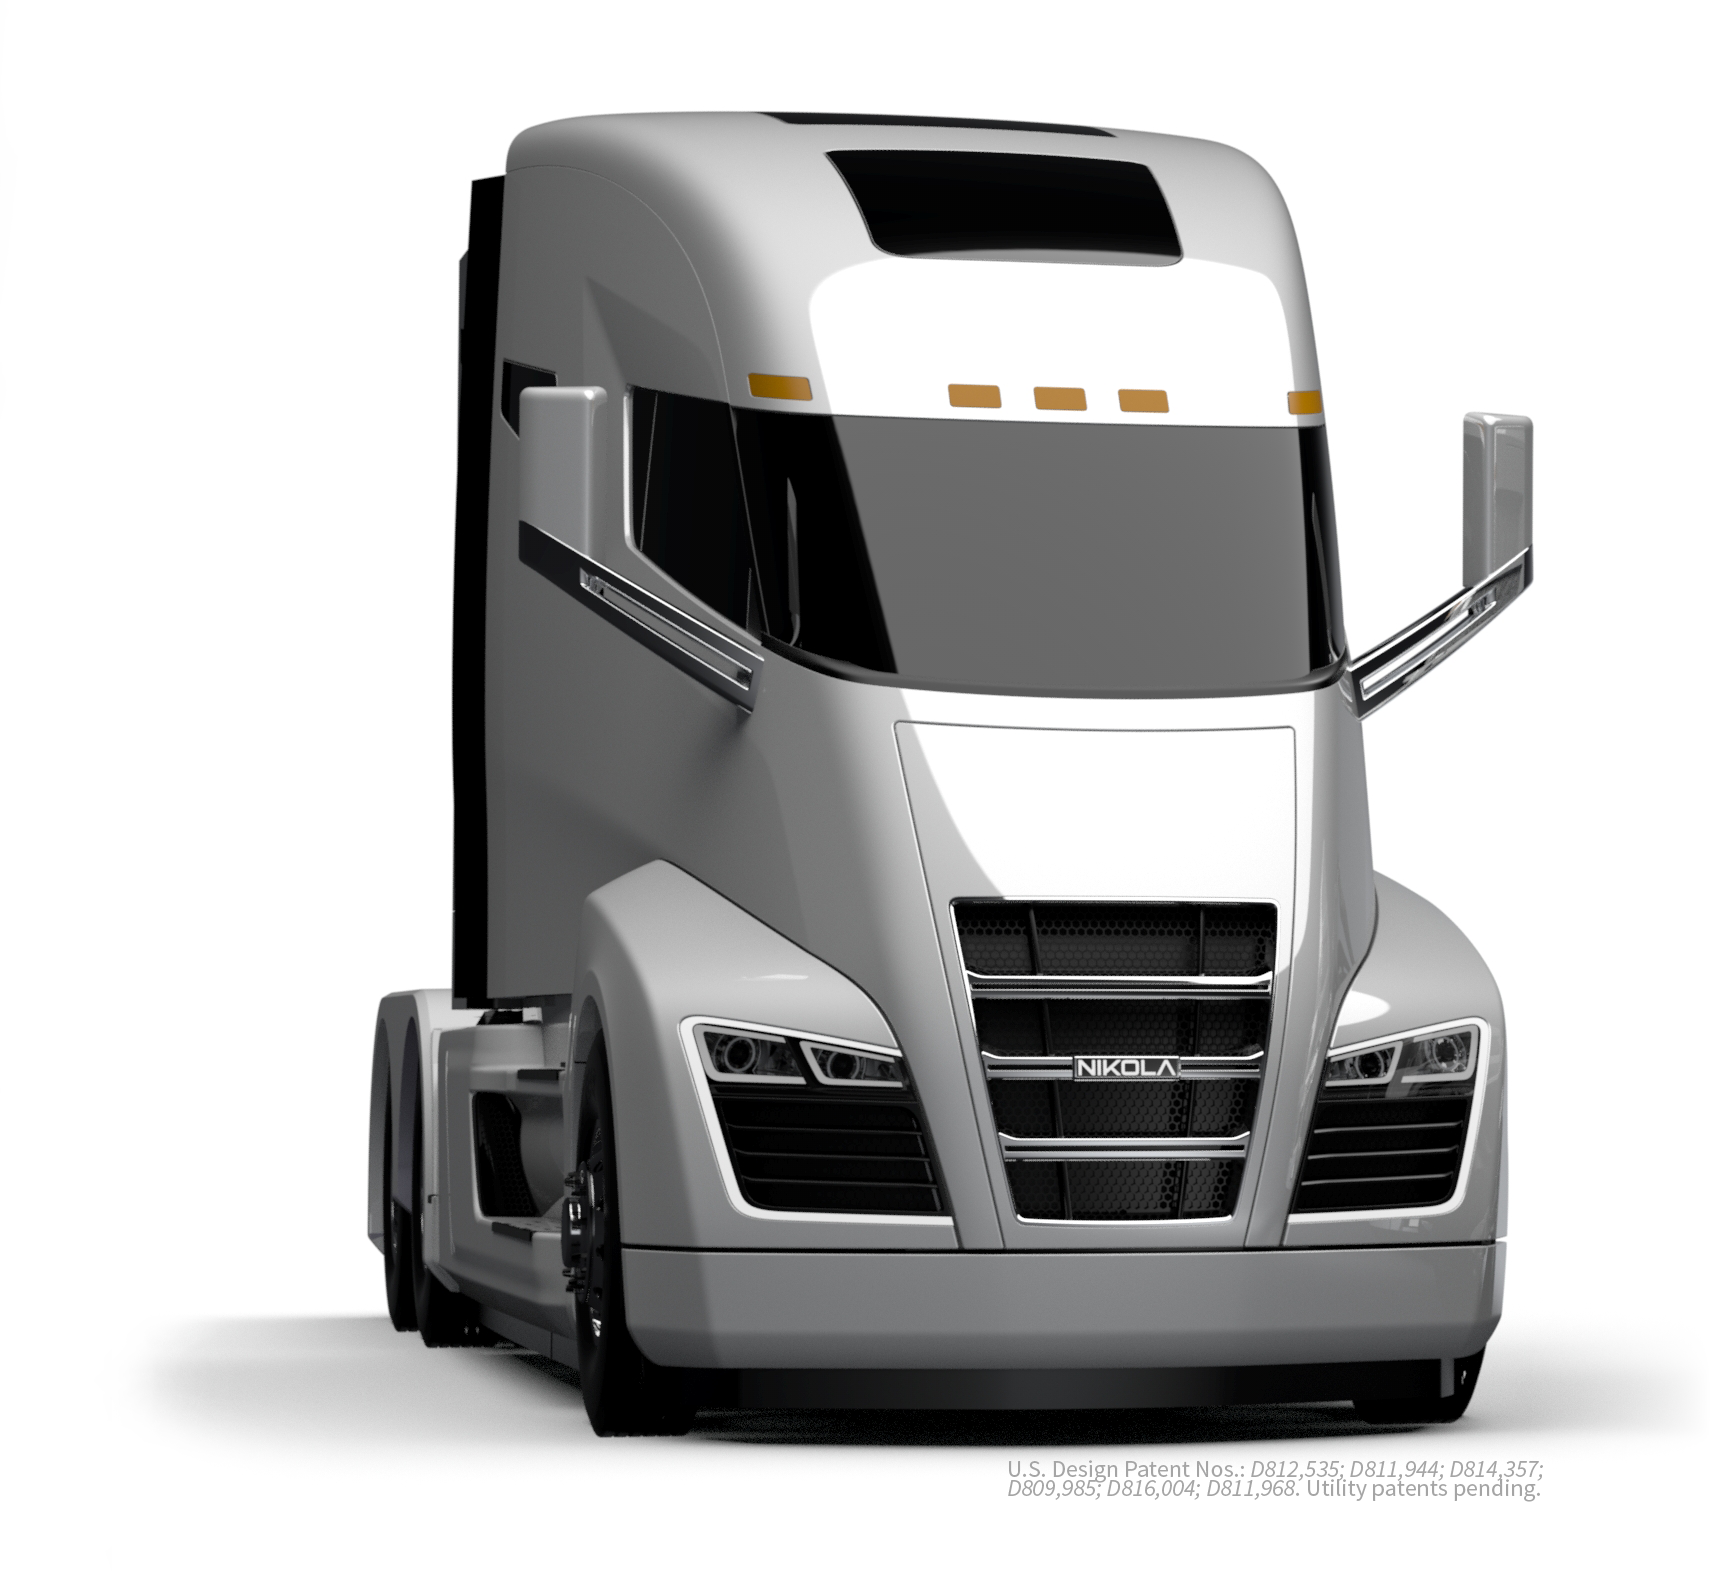 Nikola Corp One Speed Control Circuit For An Electric Power Tool Google Patents View Driver Profiles And Locations Track Miles Routes Energy Consumption Much More